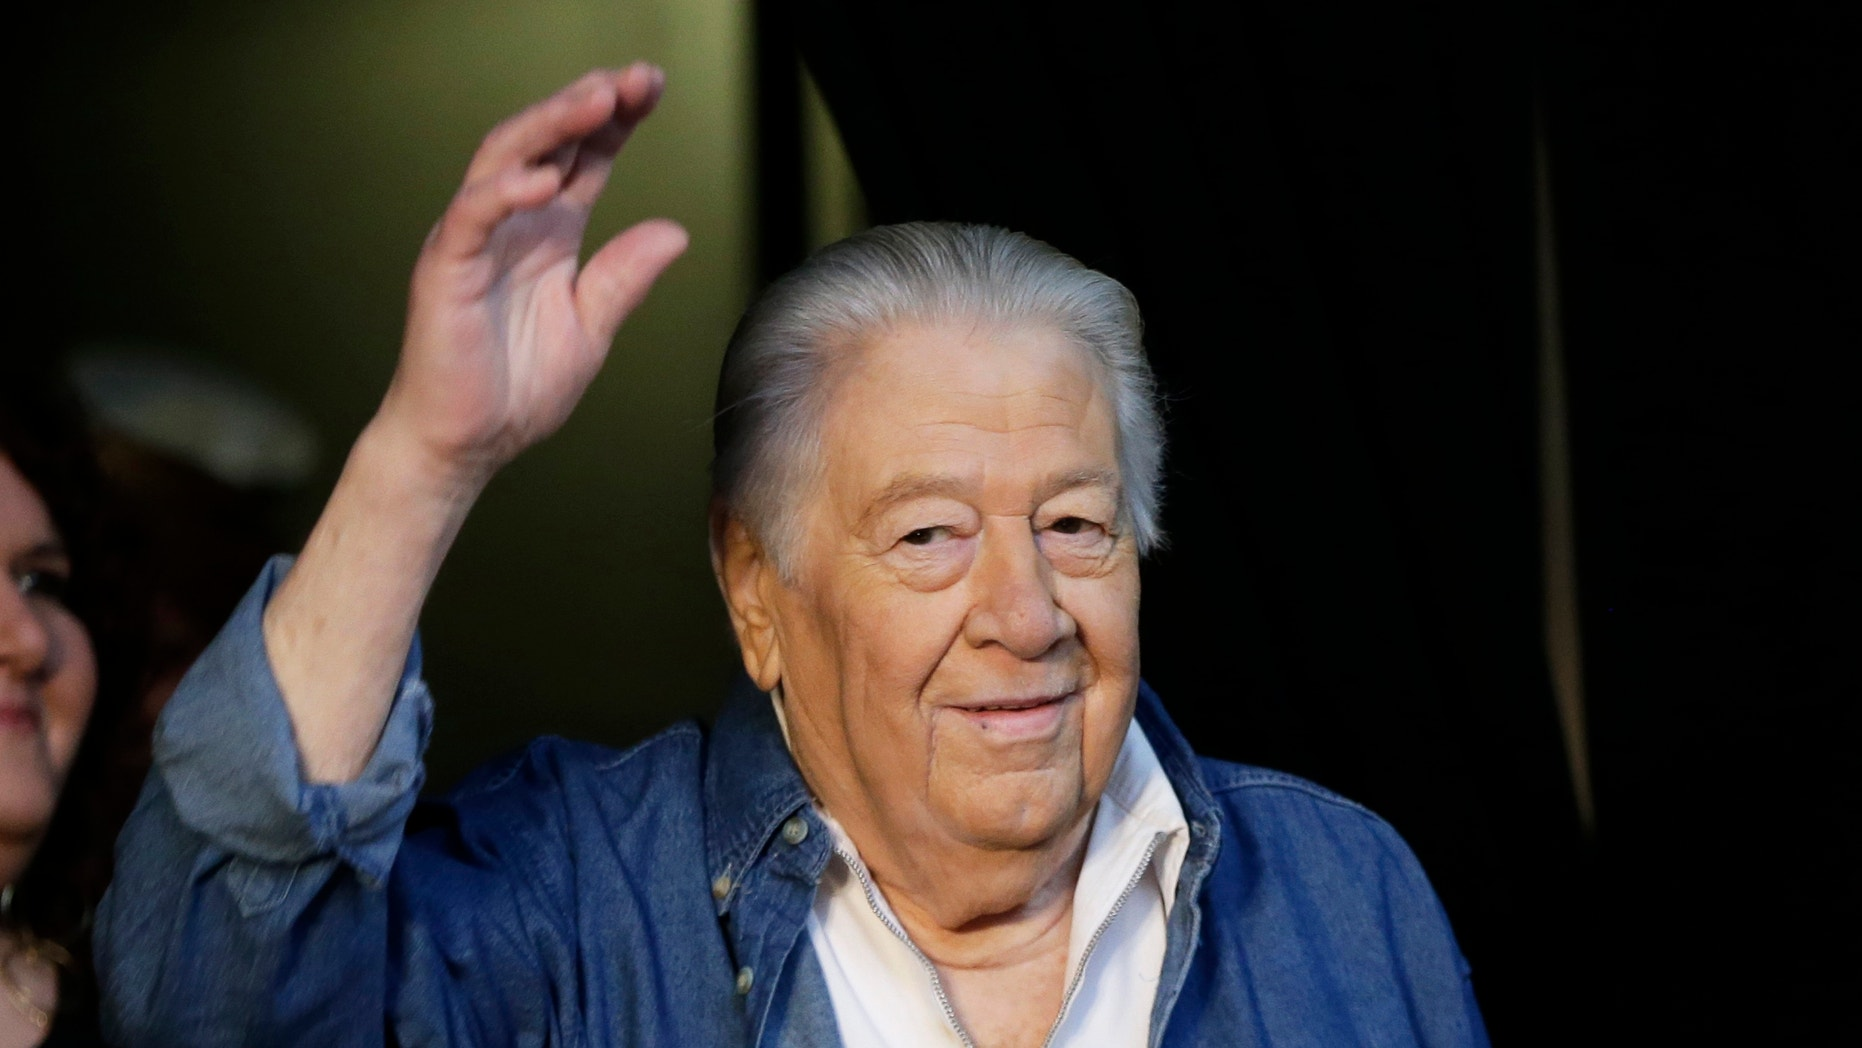 In this April 10, 2013 file photo, Jack Clement poses for photographers at the Country Music Hall of Fame in Nashville, Tenn. Clement, a producer, engineer, songwriter and beloved figure who helped birth rock 'n' roll and push country music into modern times, died Thursday morning, Aug. 8. He was 82.